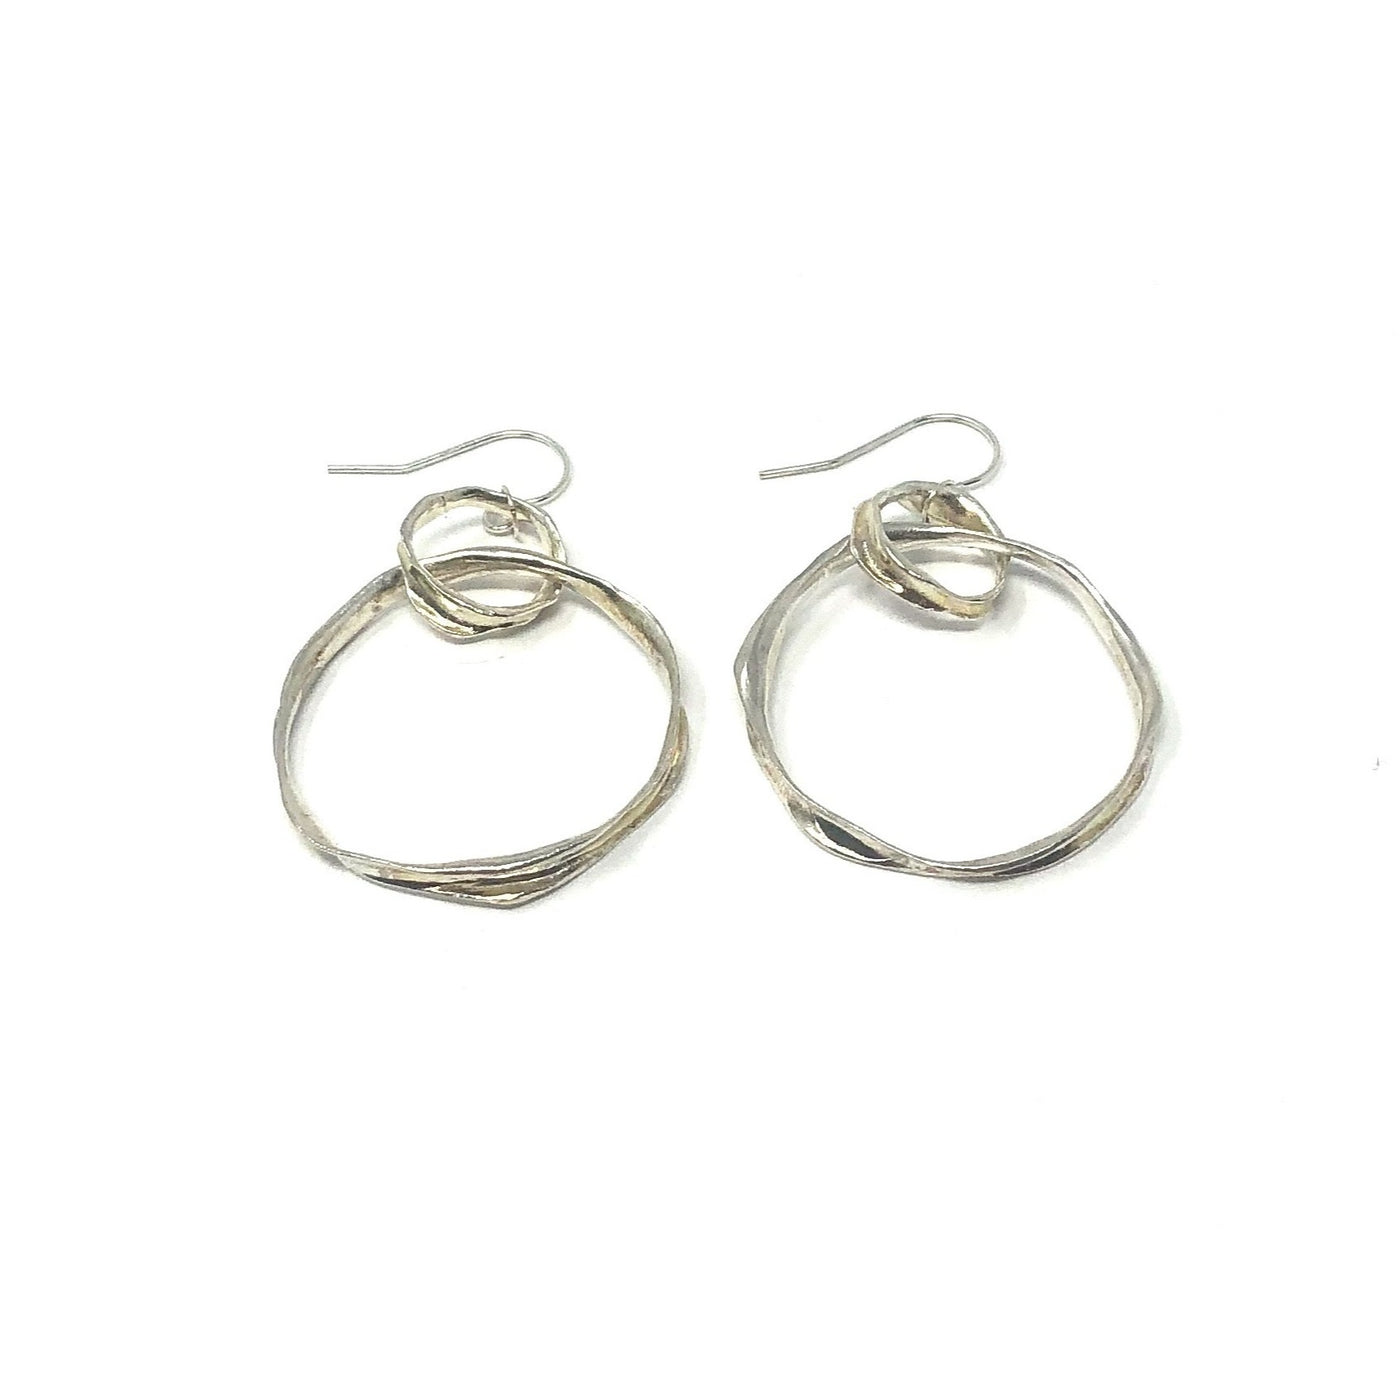 MSH EPOC68S DOUBLE CIRCLES EARRINGS